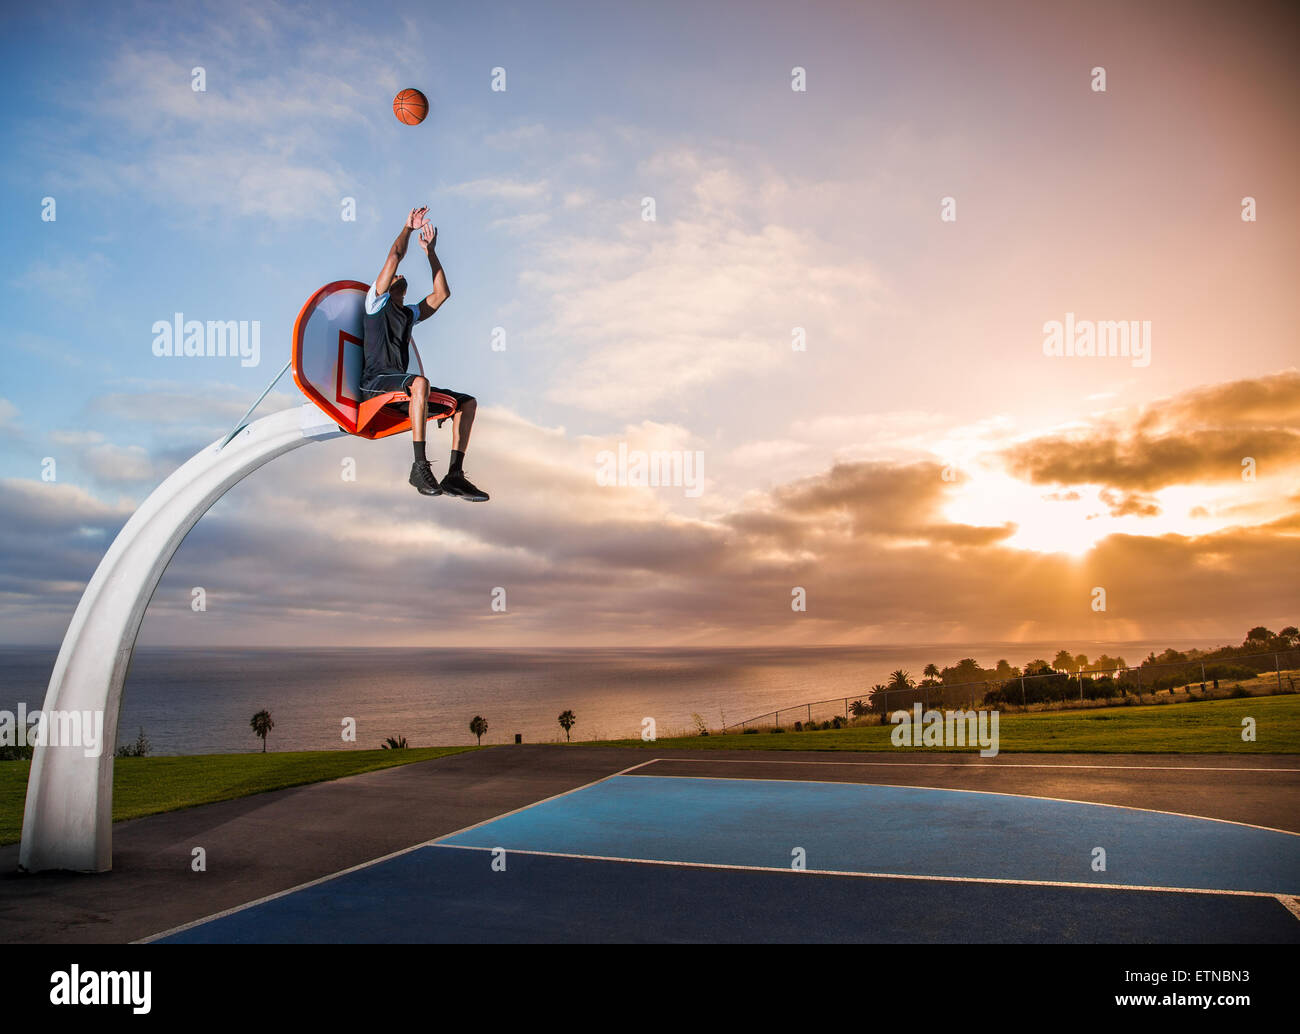 Jeune homme assis dans un panier de basket-ball dans un parc, Los Angeles, Californie, USA Photo Stock